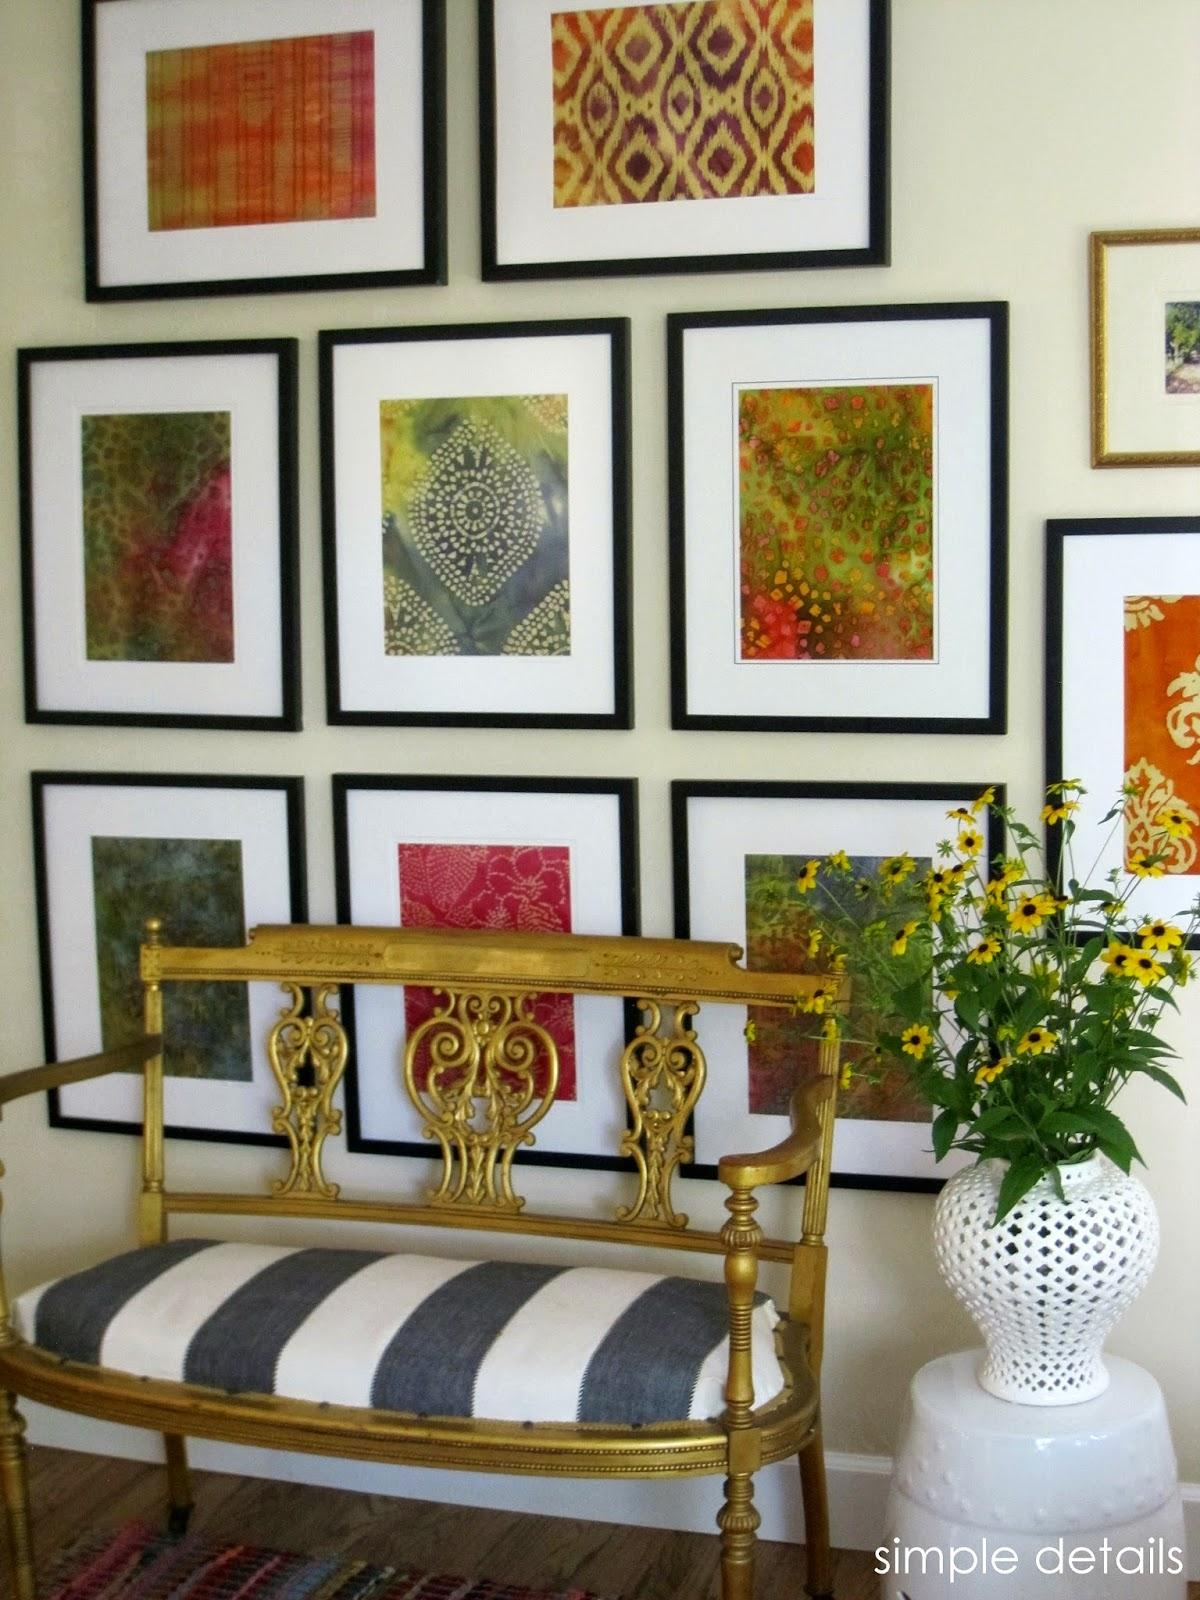 Simple Details: Diy Framed Batik Fabric Within Framed Fabric Wall Art (View 18 of 20)